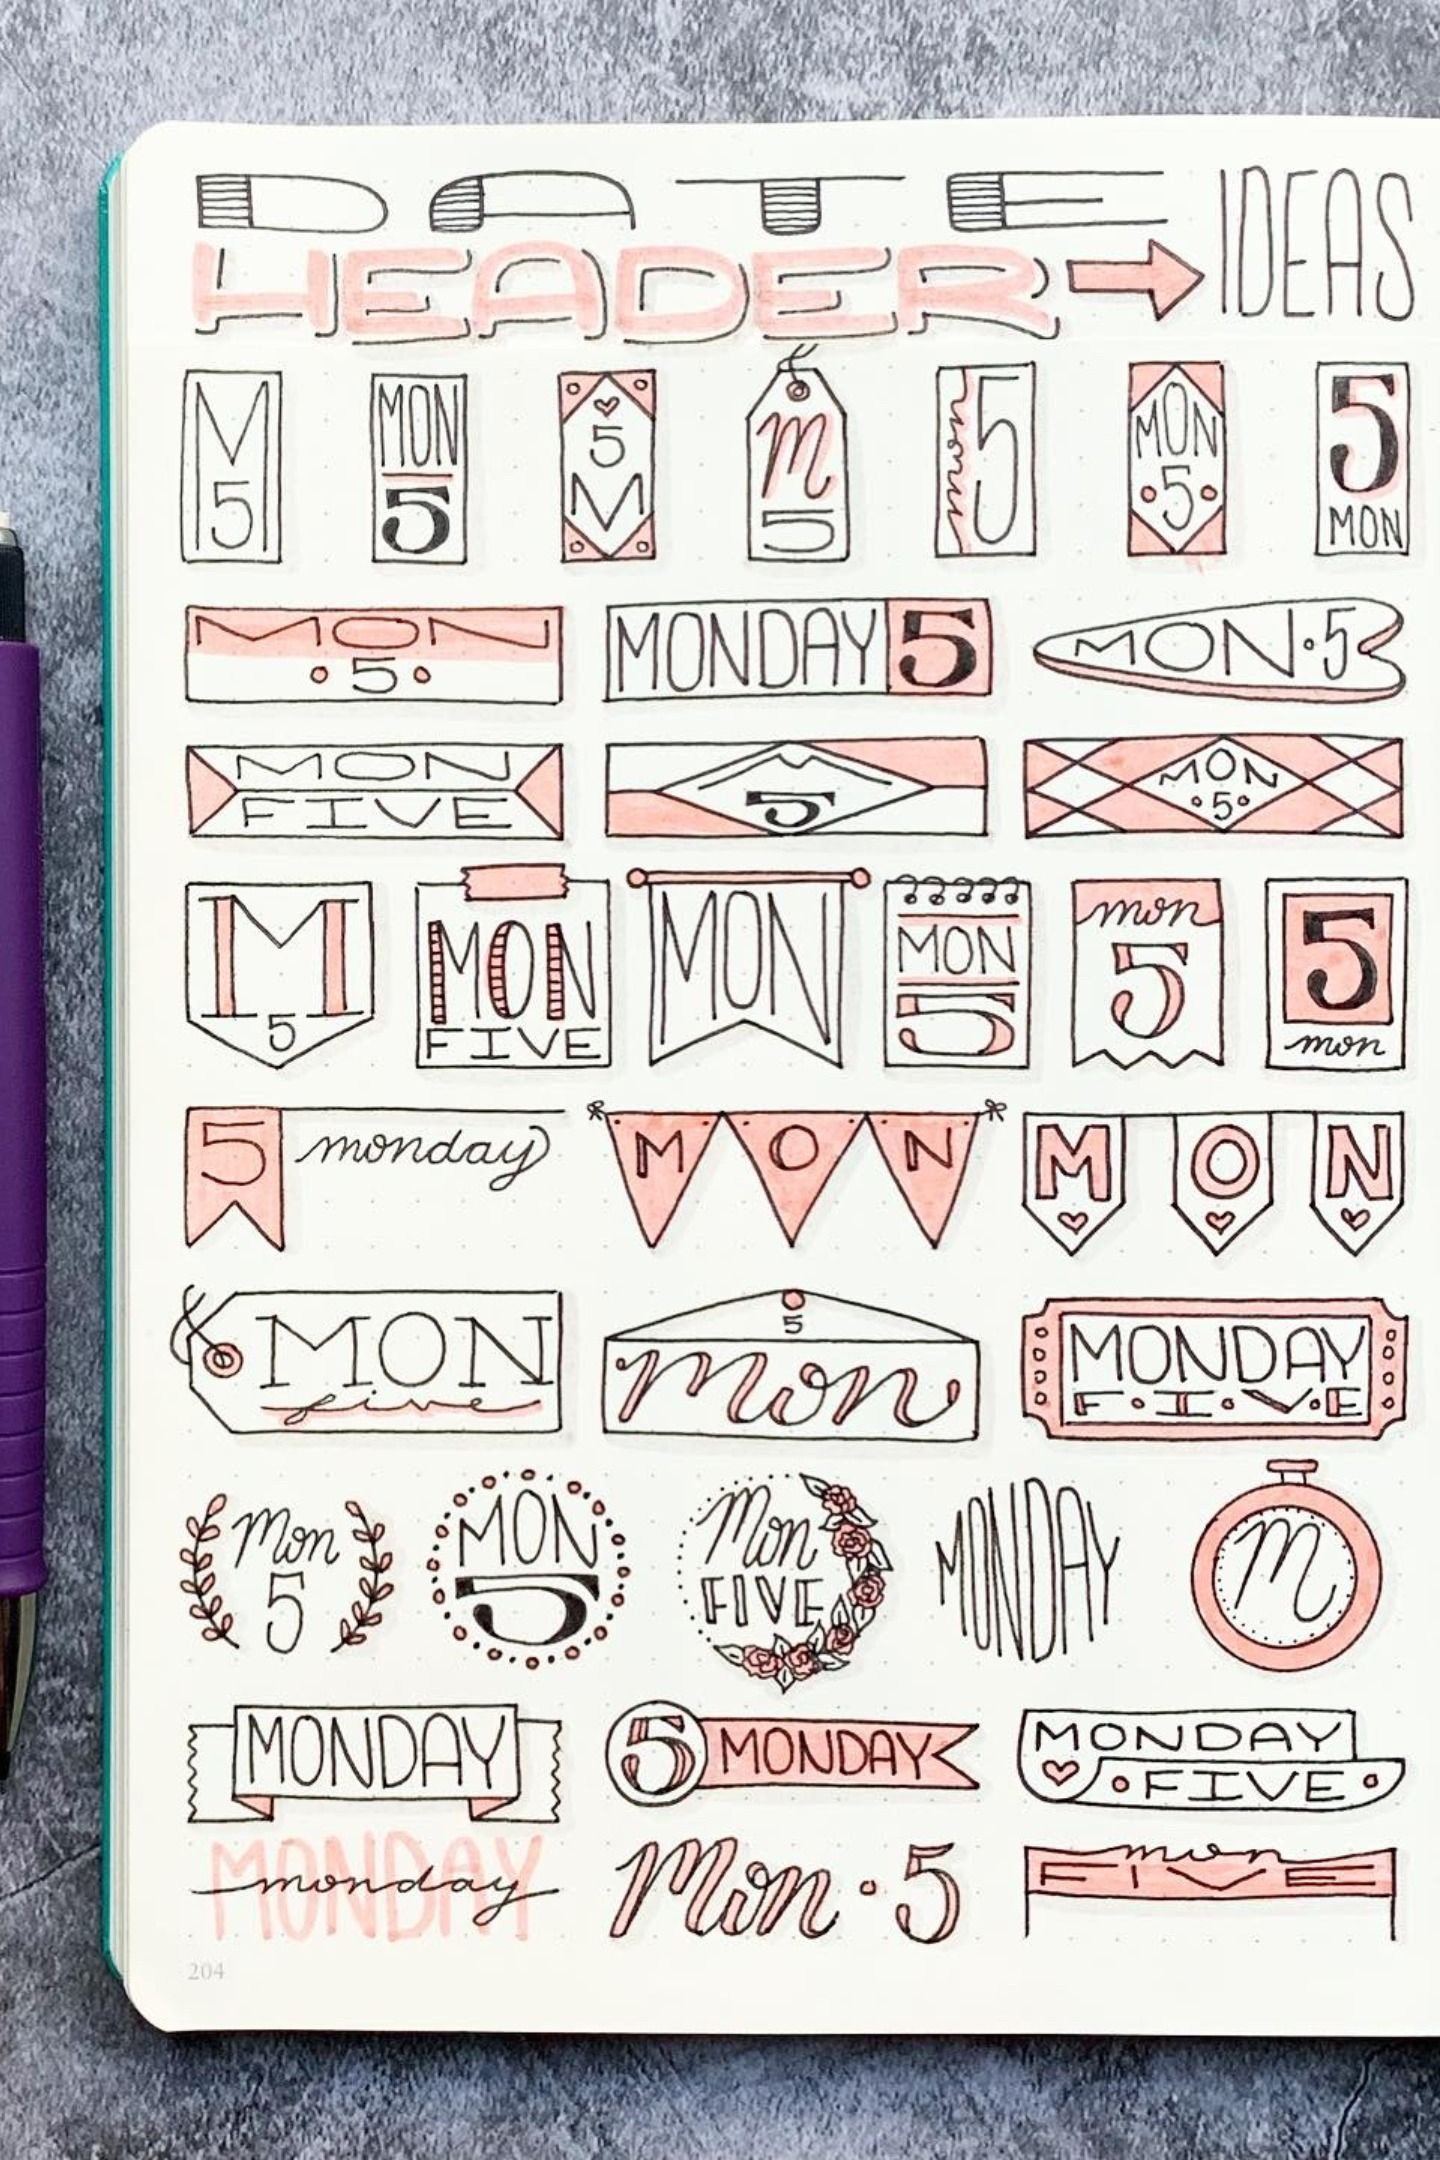 How To Draw Journal Date Headers In 2020 Bullet Journal Banner Bullet Journal Books Bullet Journal Notes